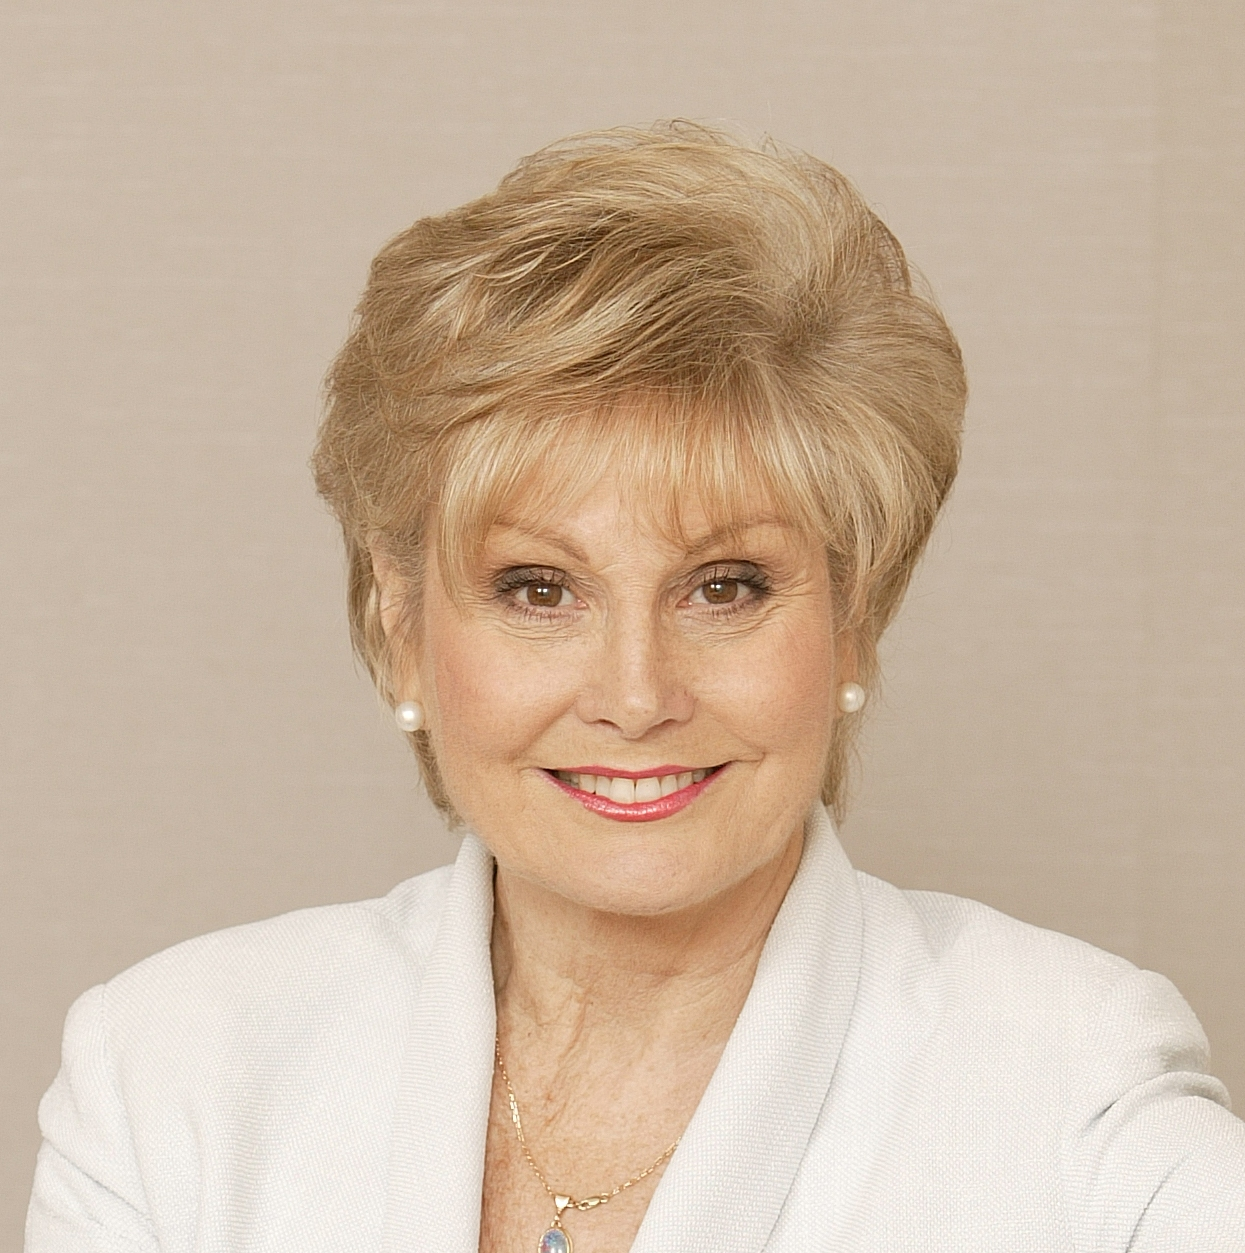 Angela Rippon